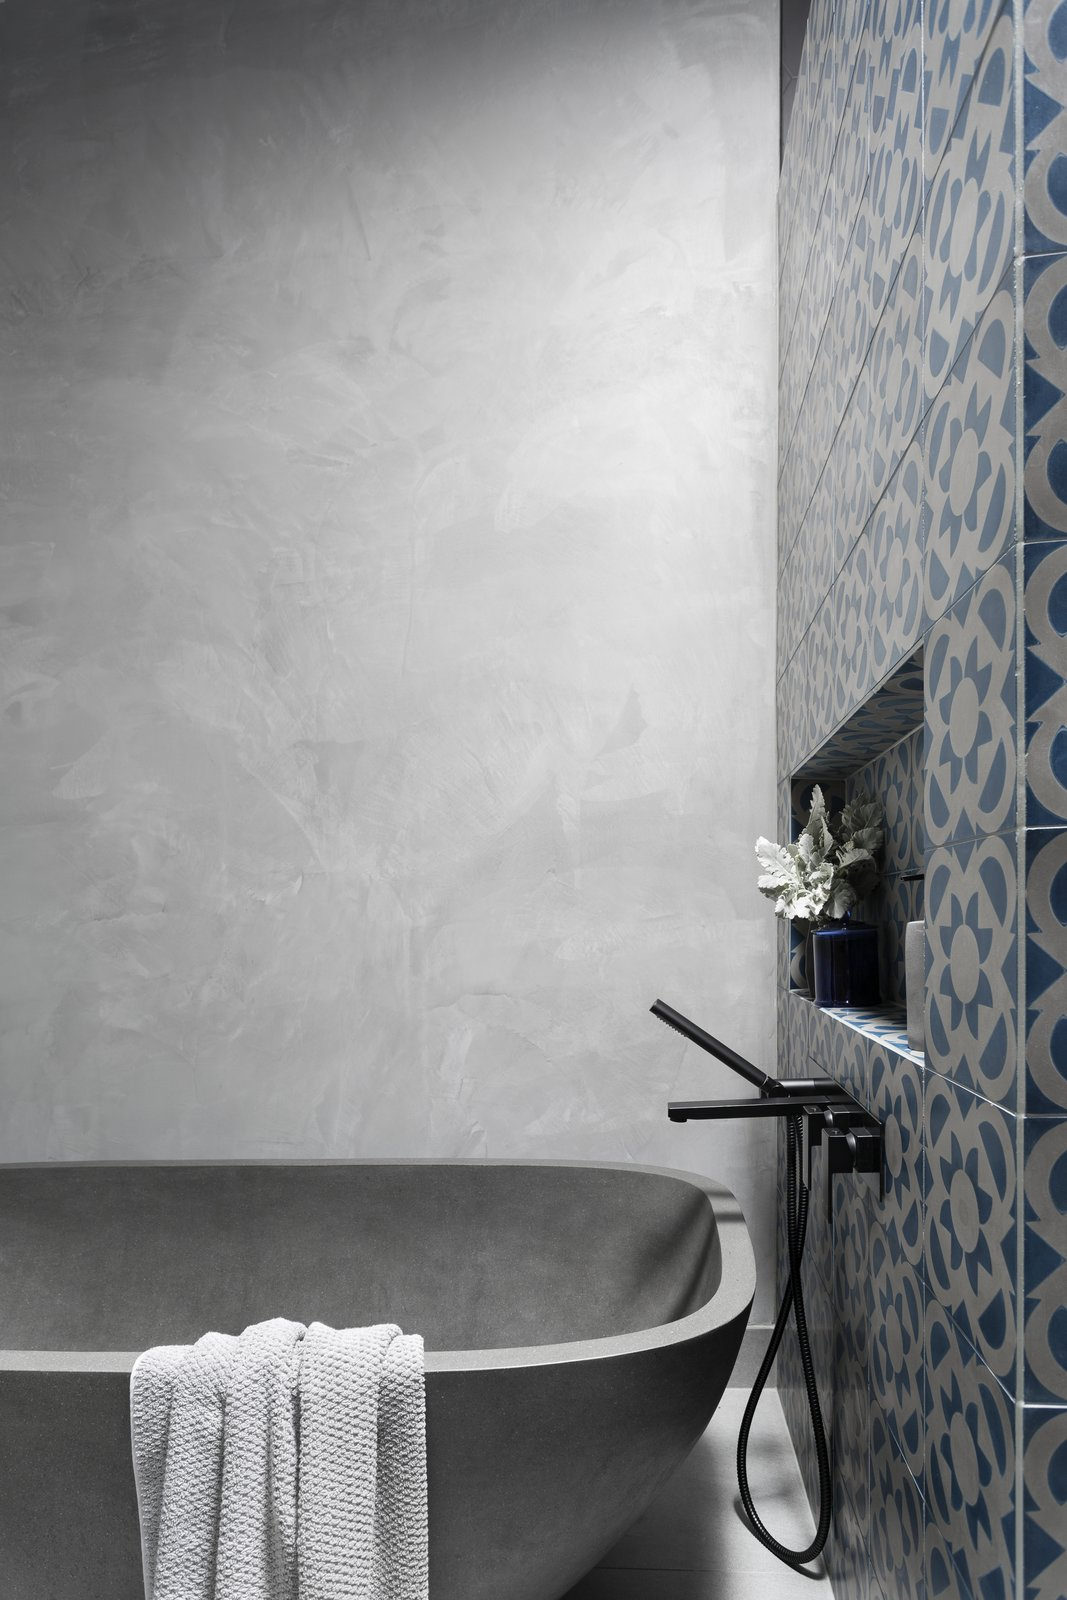 Bath Room, Ceramic Tile Wall, Concrete Wall, and Freestanding Tub  Photo 6 of 8 in 6 Insider Tips For Bathroom Design From the Experts